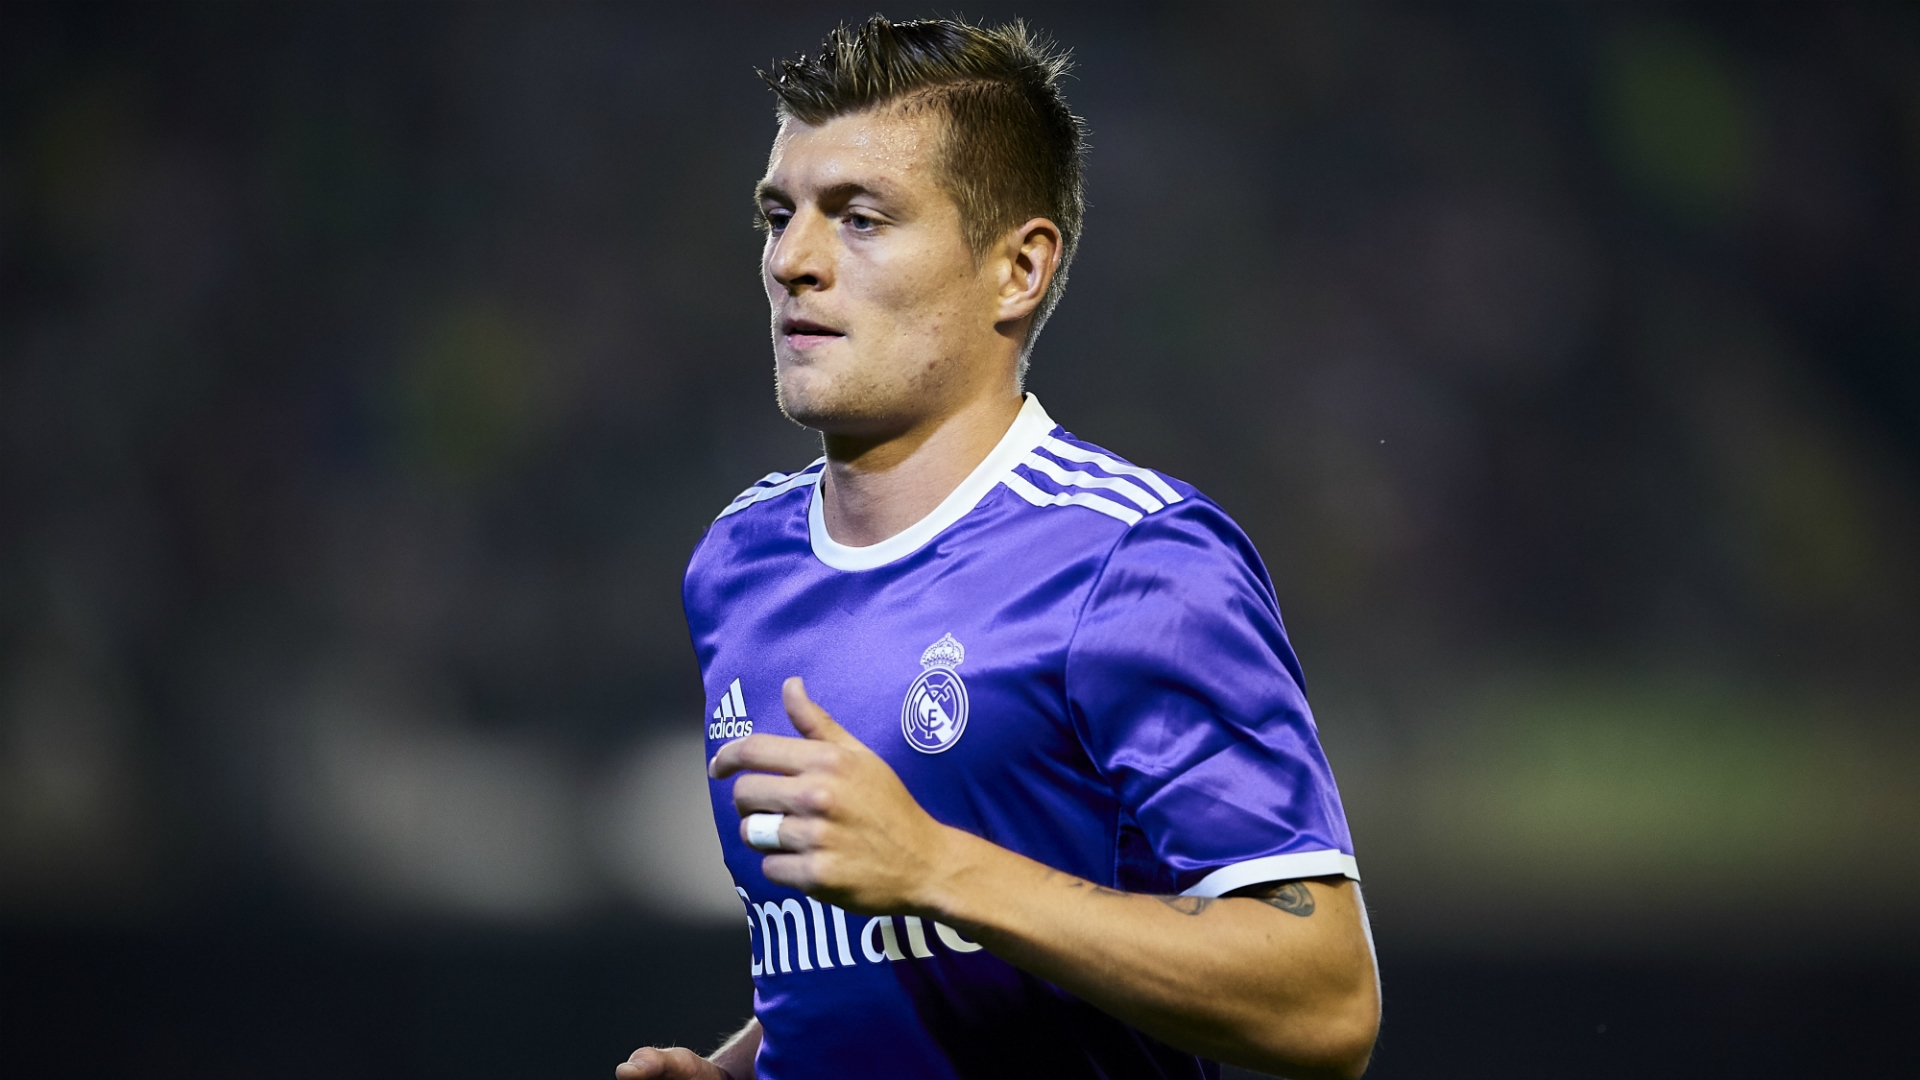 Toni Kroos confirms that money played a role in his departure from Real